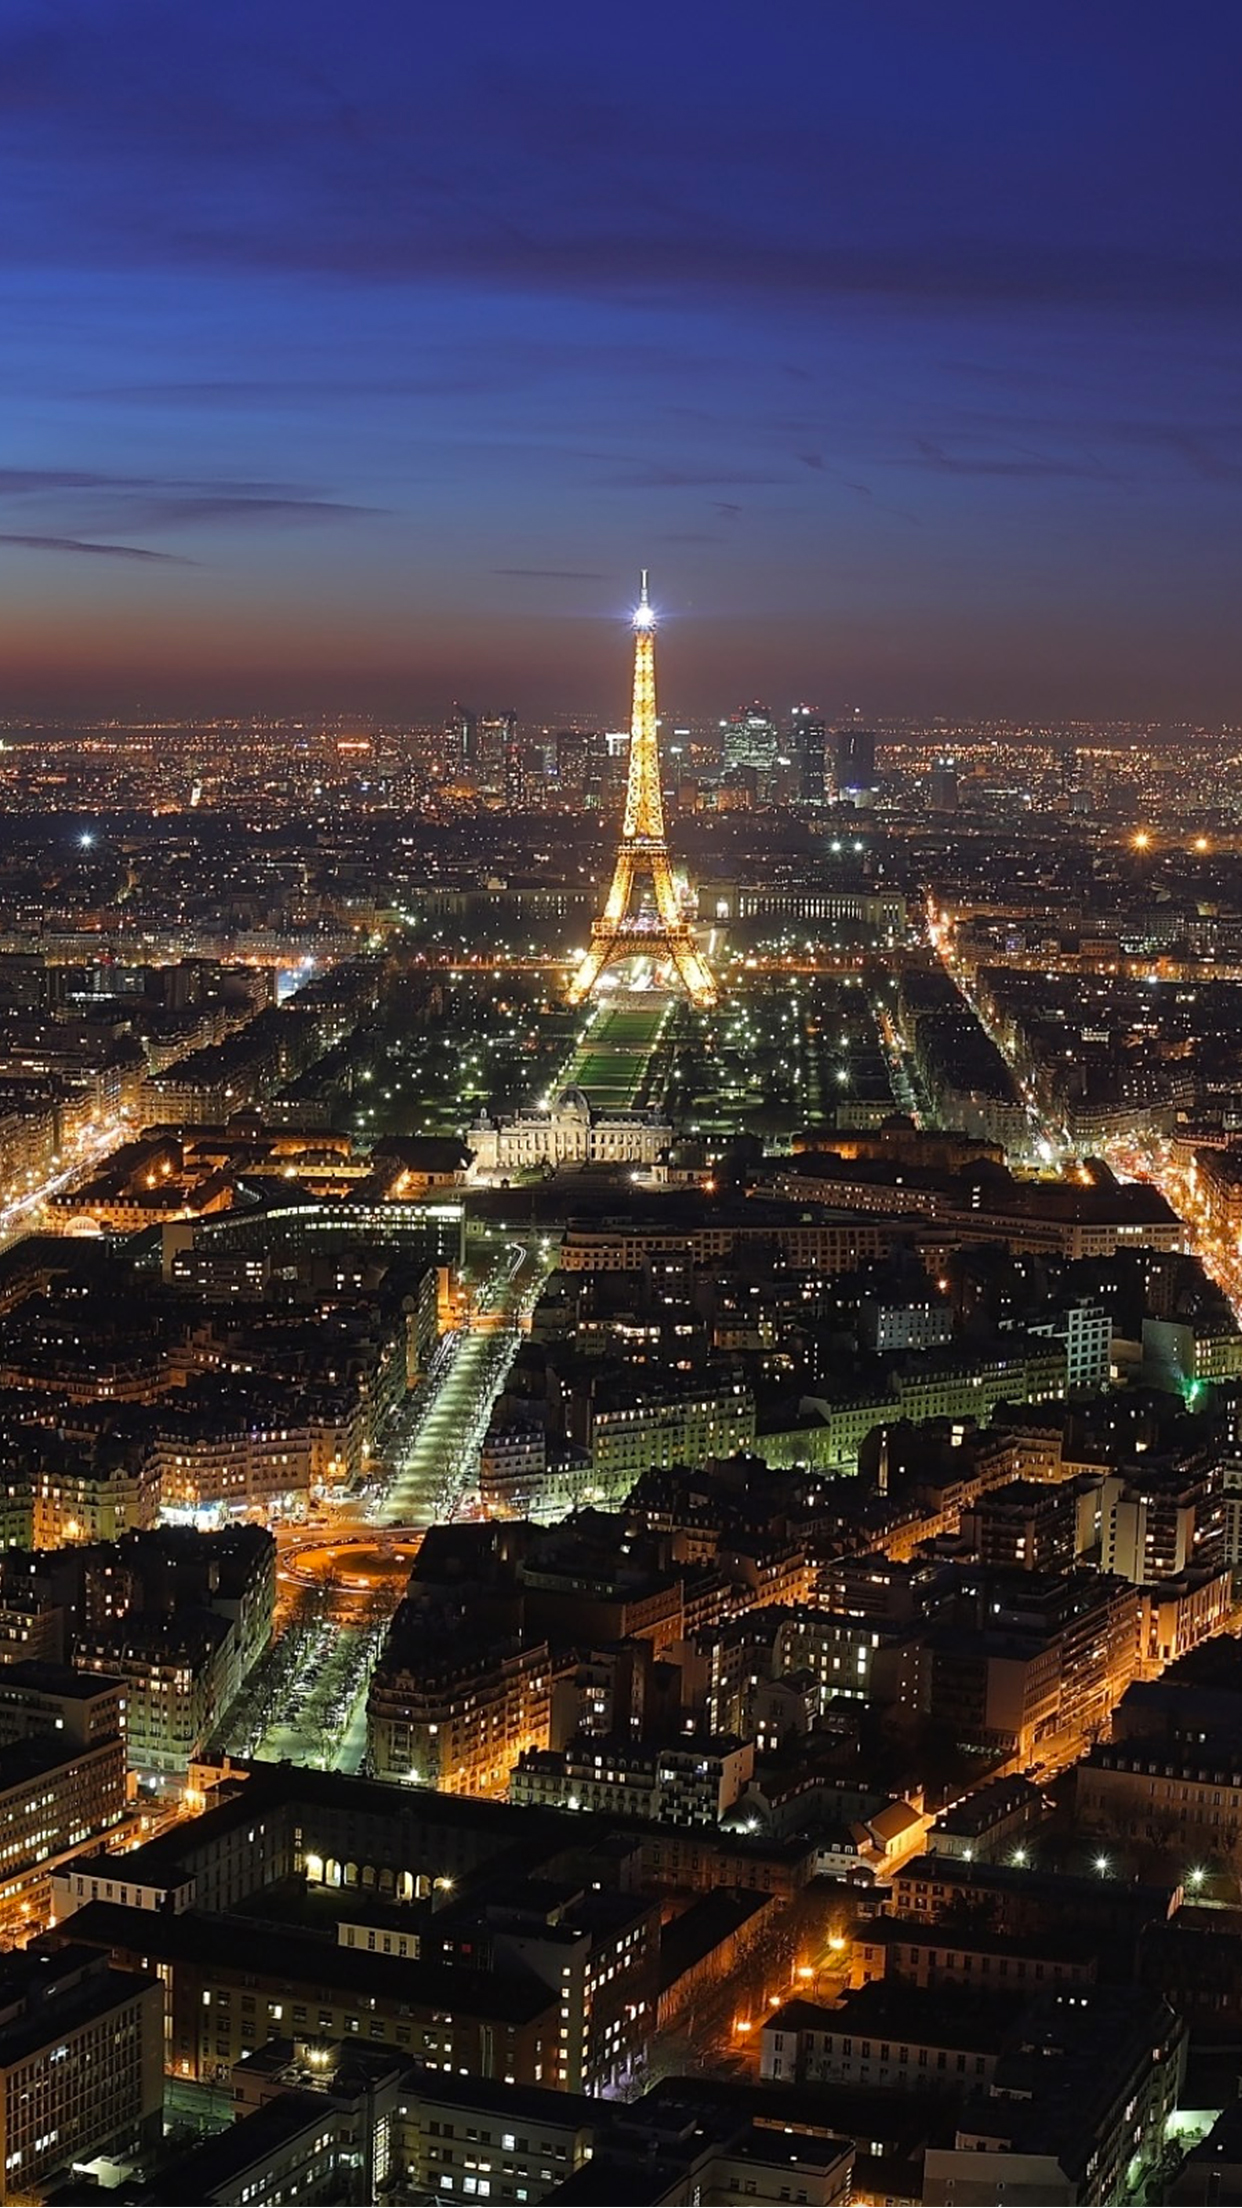 Paris by night city 3Wallpapers iPhone Parallax Paris by night city